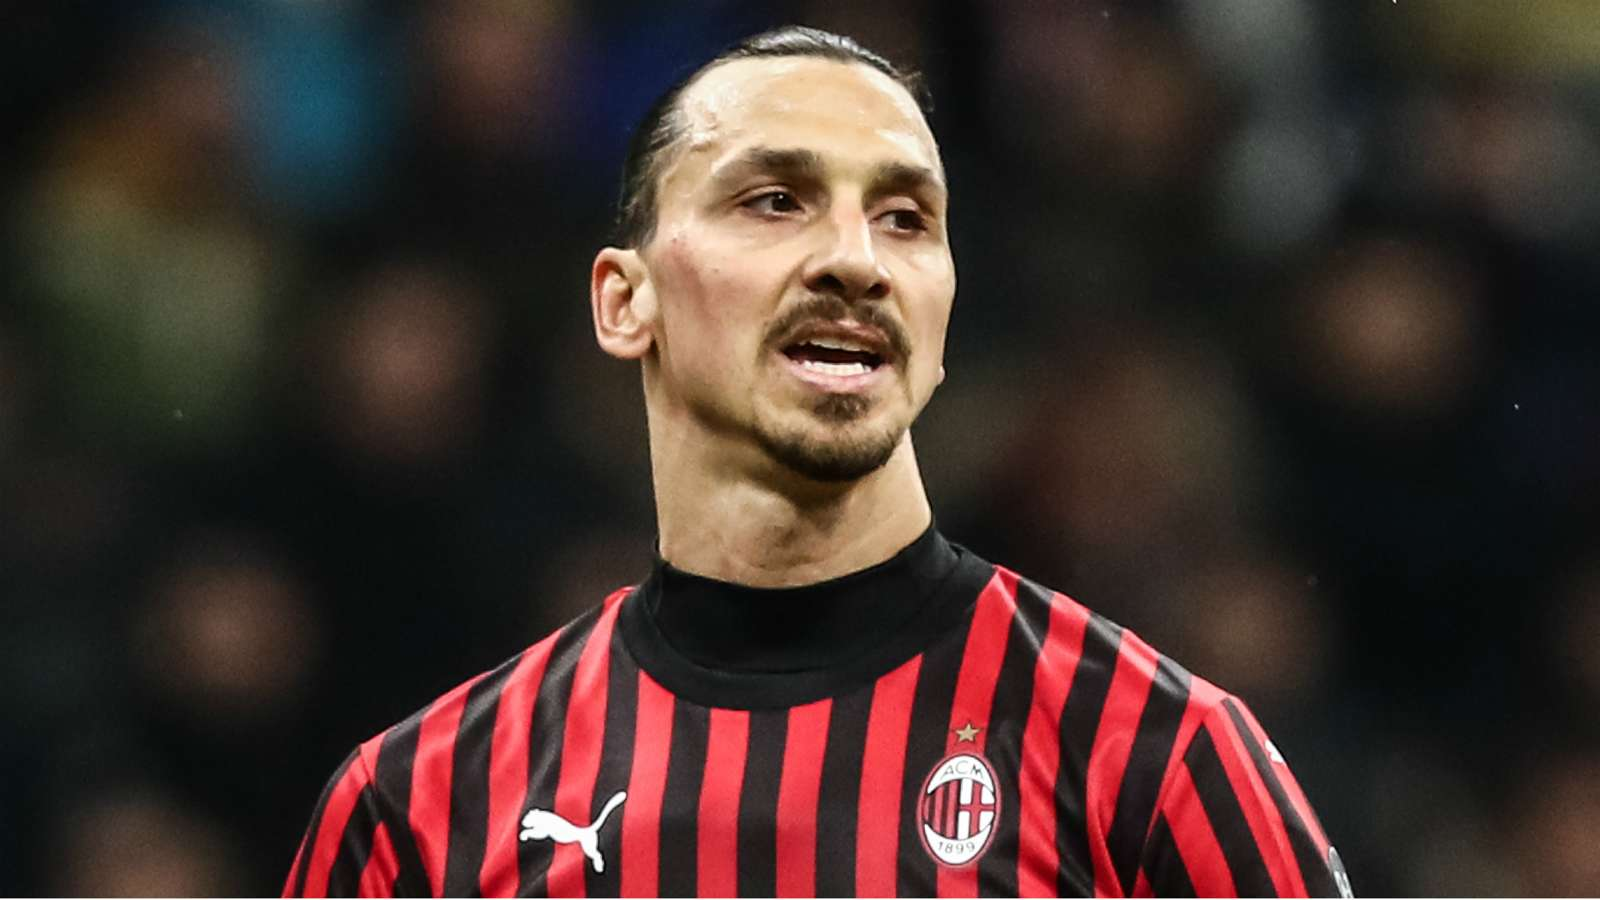 Hammarby sporting director says Zlatan could sign for the club - Bóng Đá